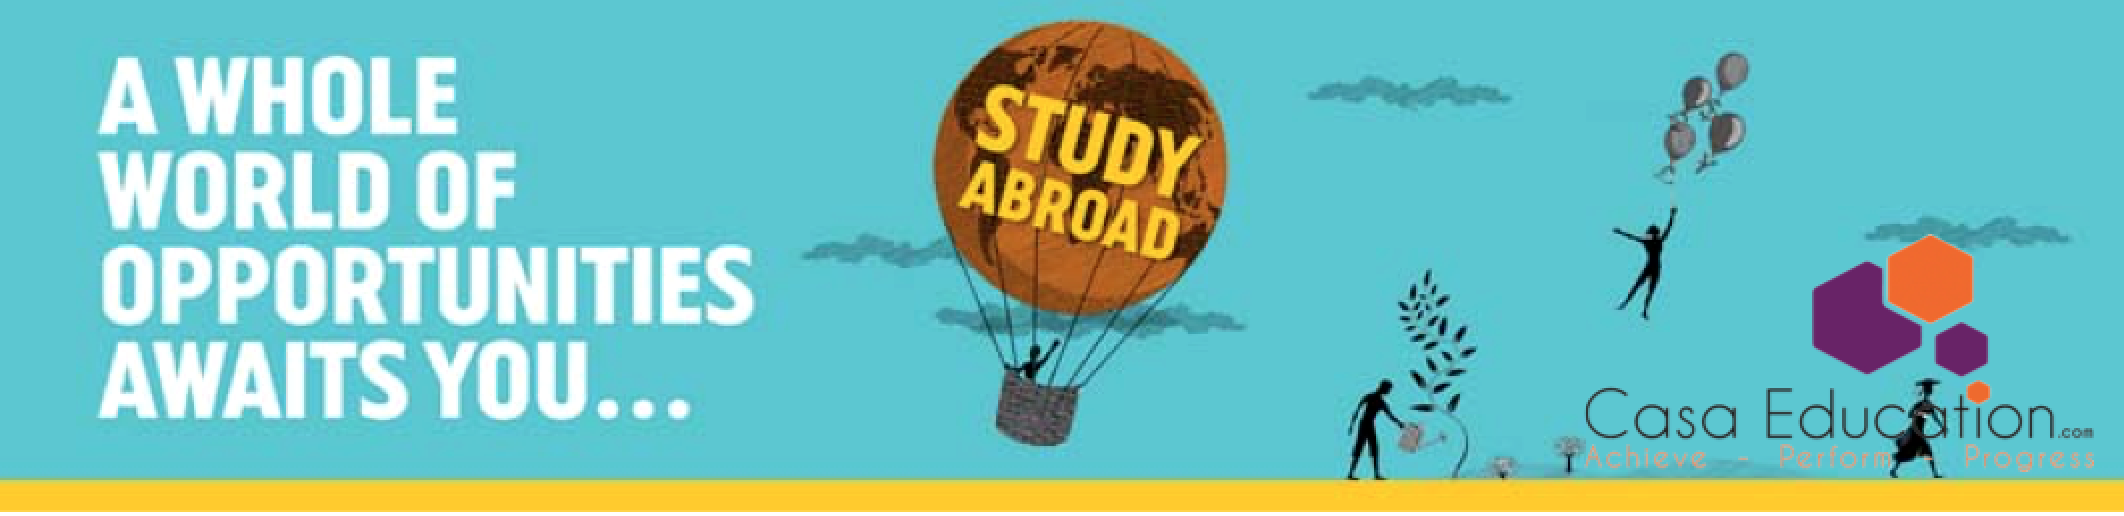 banner-study-abroad-CasaEducation